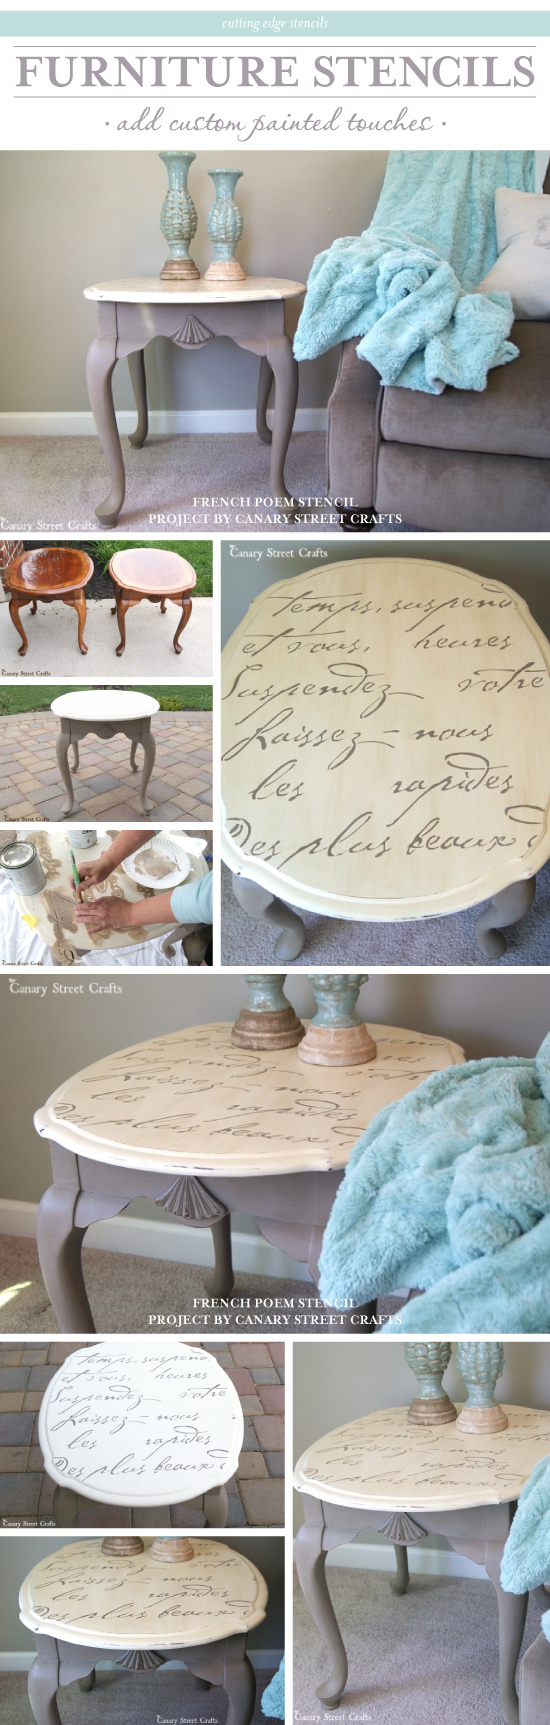 A Diy Stenciled Side Table Using The French Poem Allover Stencil